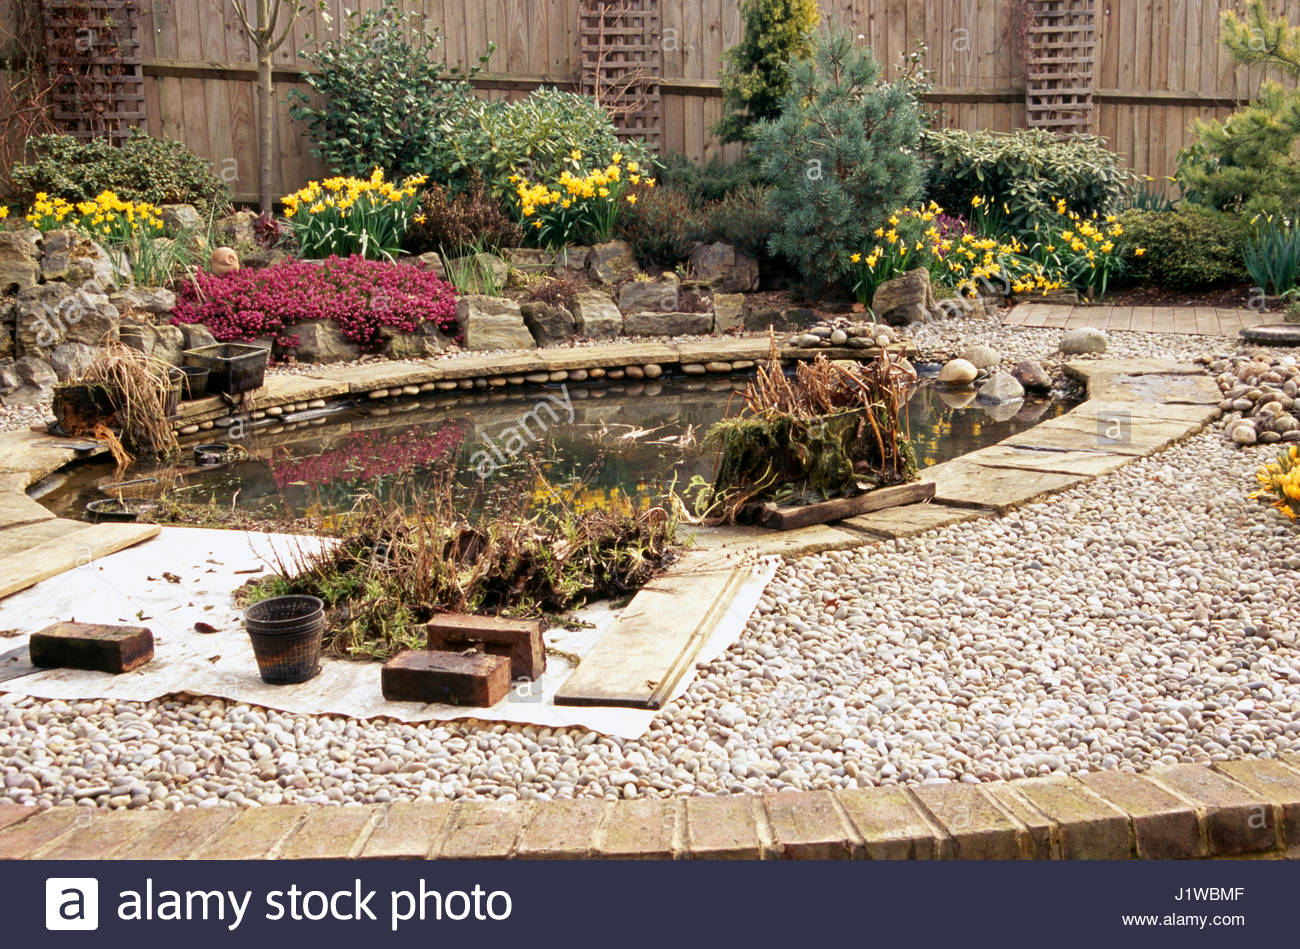 POND TO BE FILLED IN TO MAKE GARDEN AND AREA SAFE FOR CHILDREN Stock ...